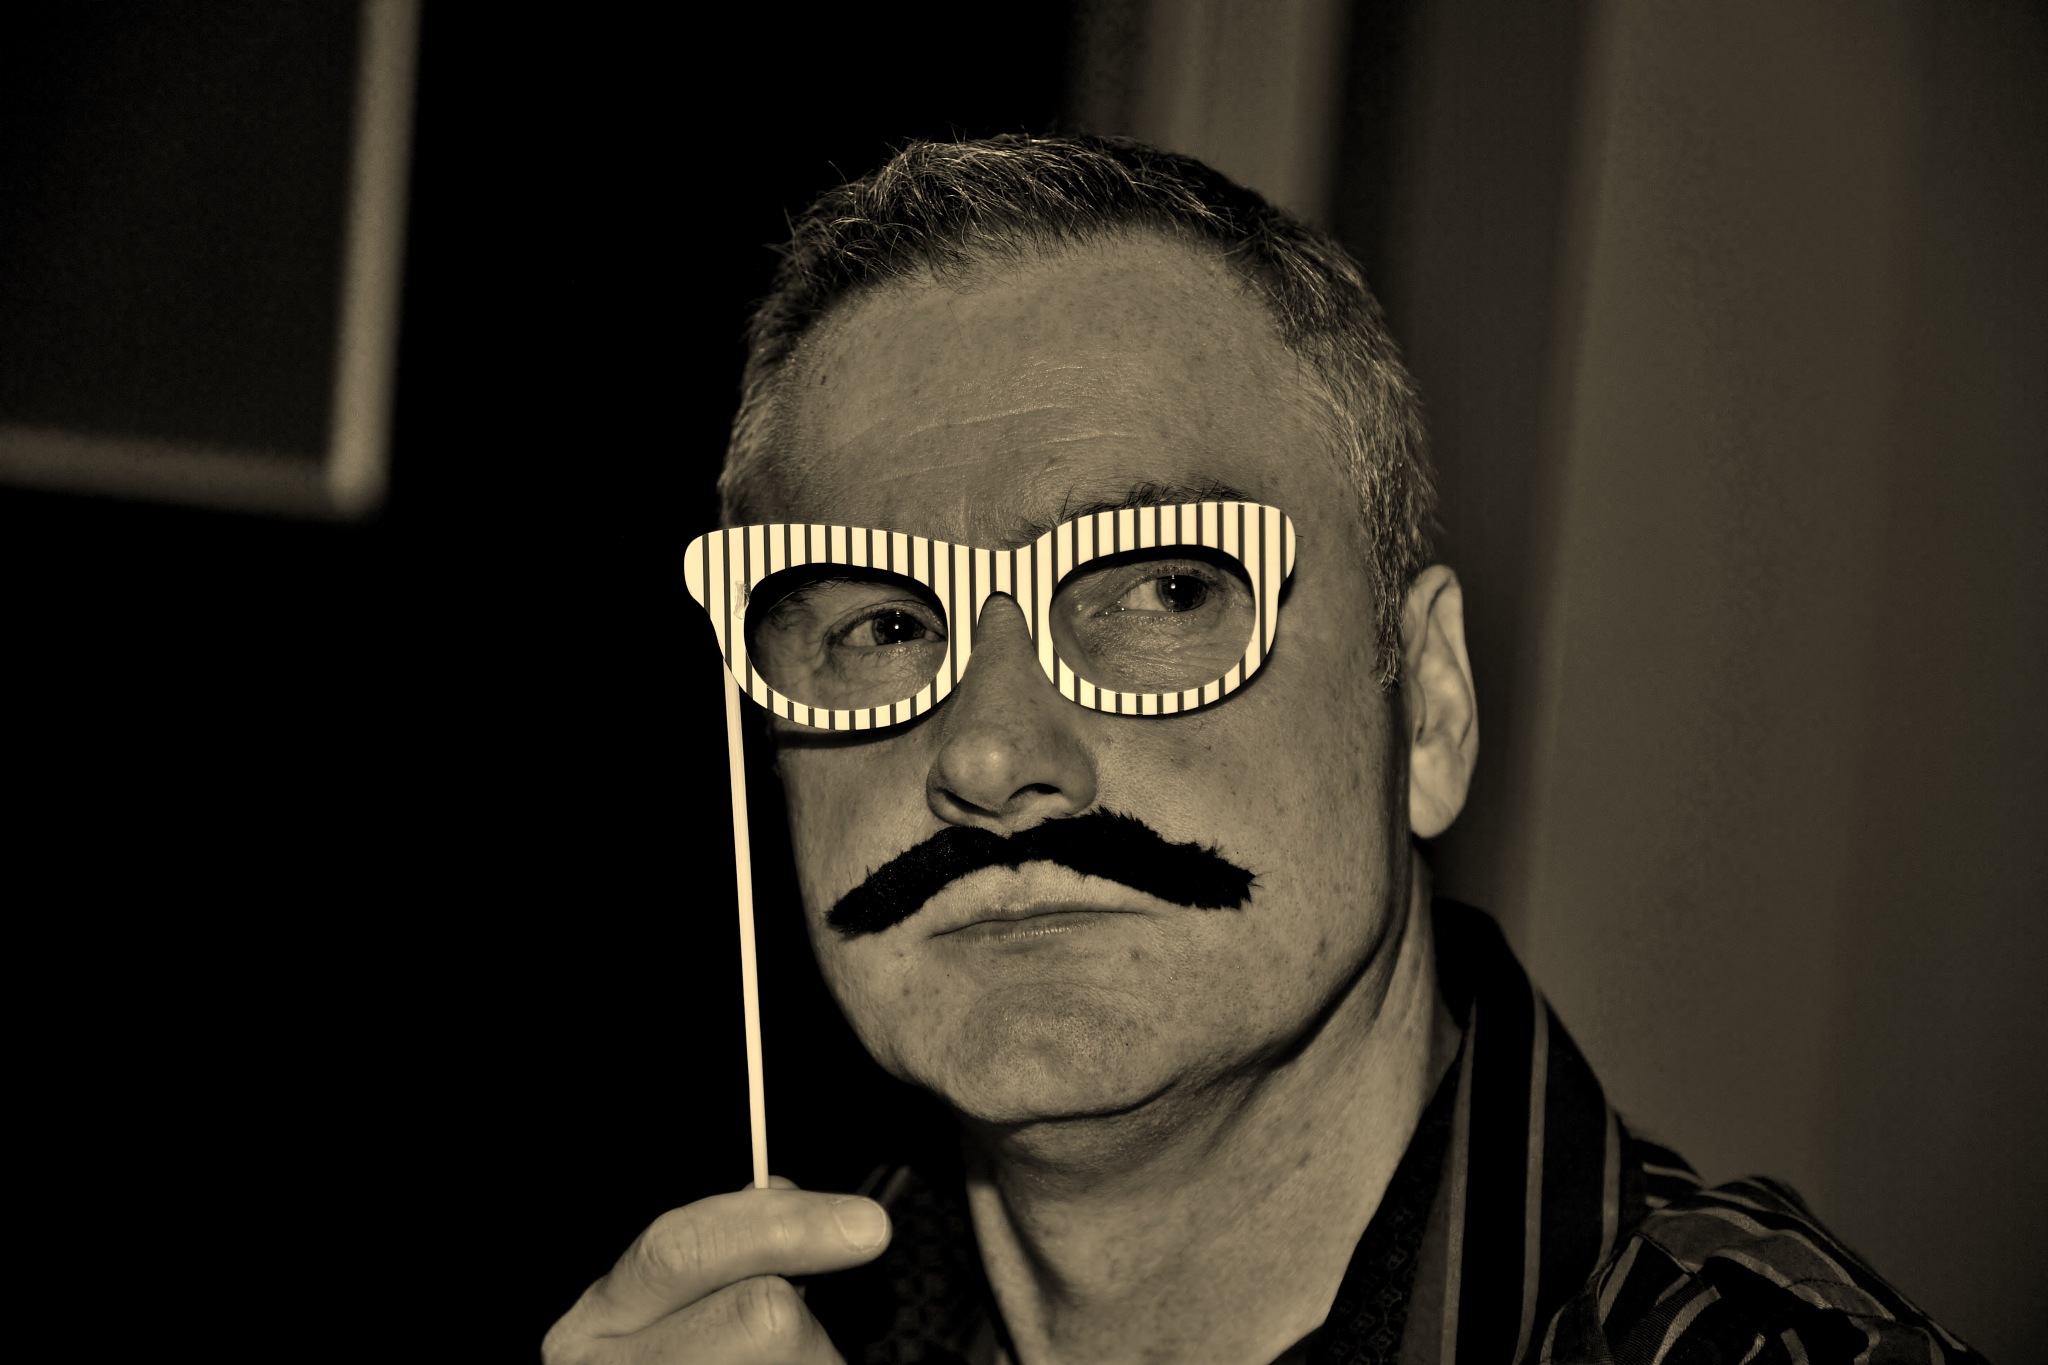 The Man Behind The Moustache - Sepia by paul.hosker